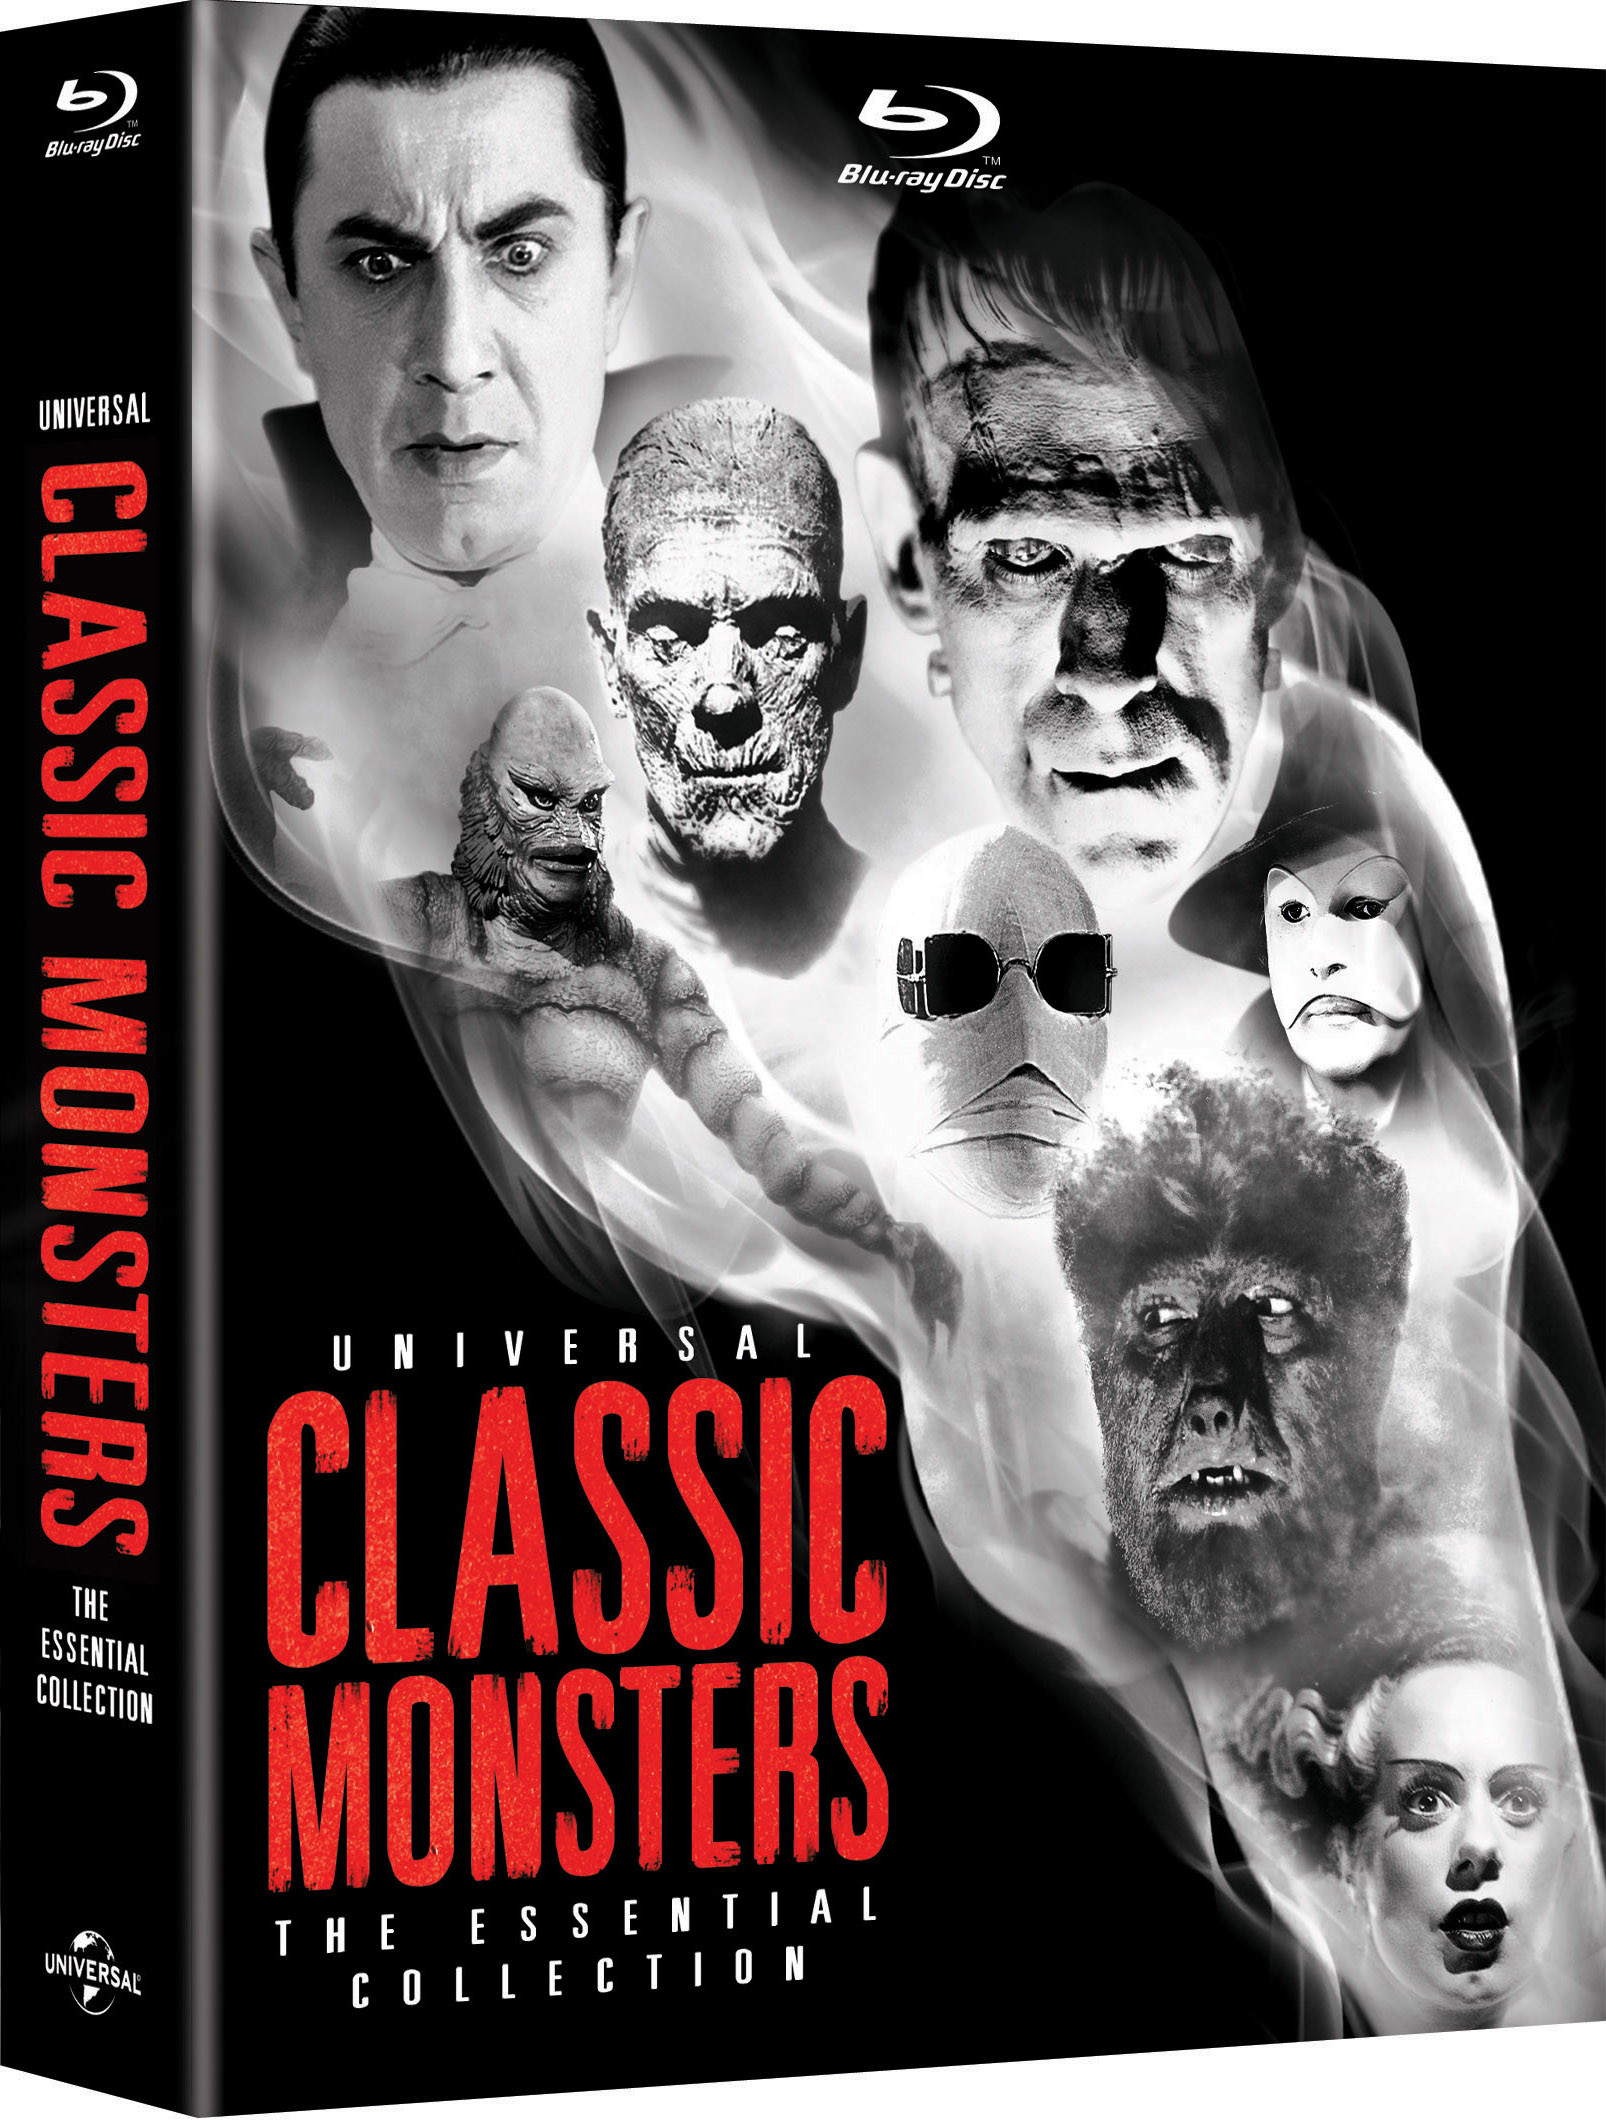 UNIVERSAL CLASSIC MONSTERS: THE ESSENTIAL COLLECTION Debuts On Blu-ray  October 2, 2012 – We Are Movie Geeks